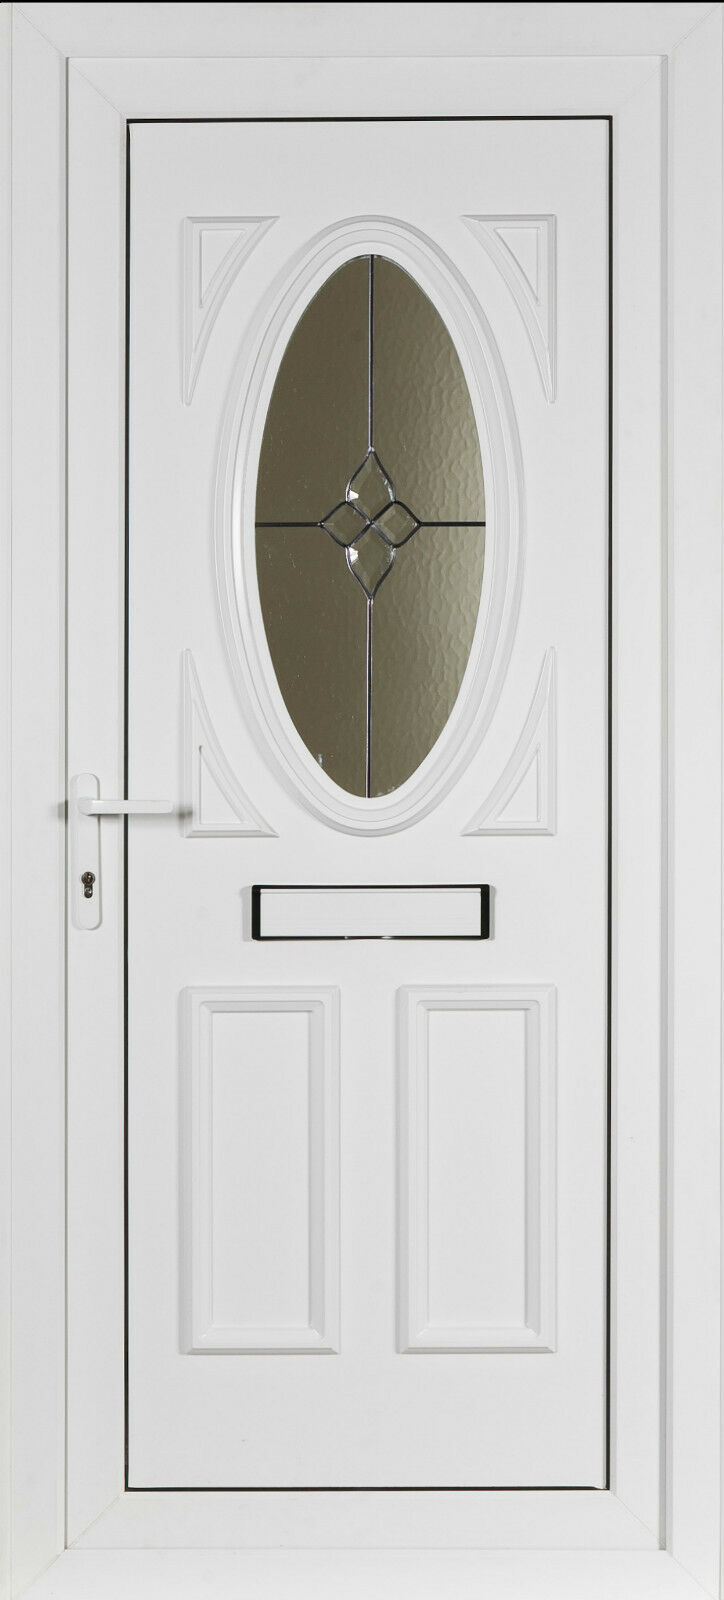 Upvc front door ebay for Upvc glass front doors